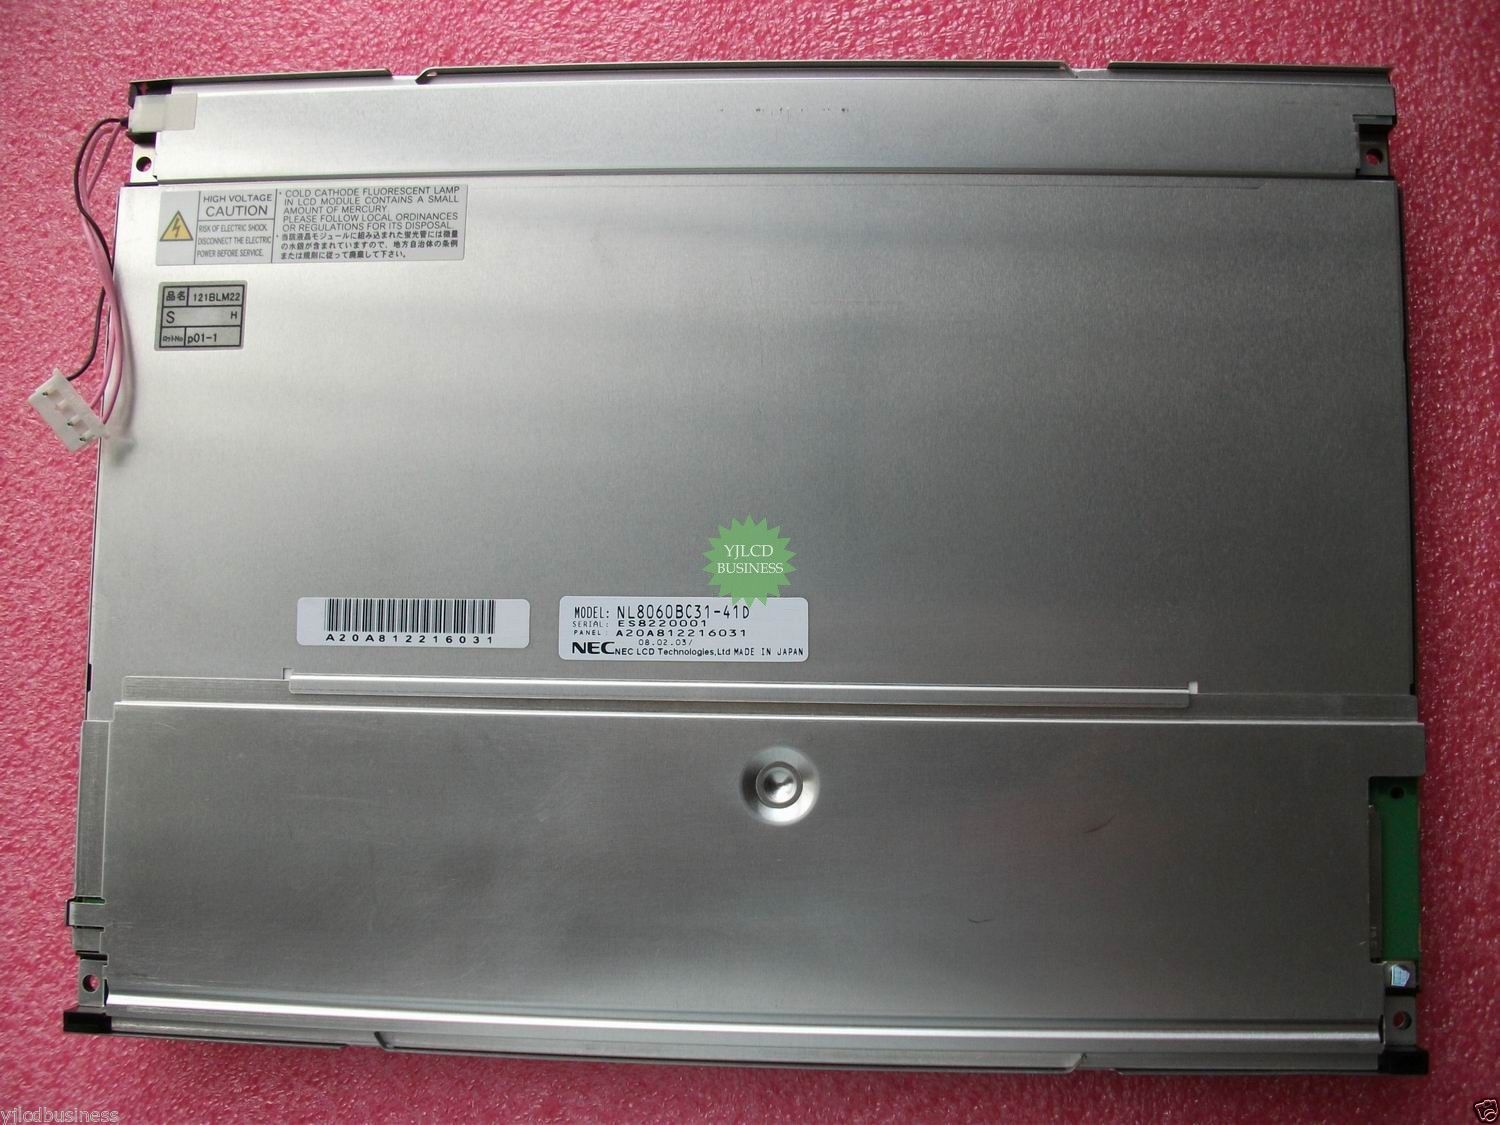 NEC NL8060BC31-41D 12.1 inch Industrial LCD screen